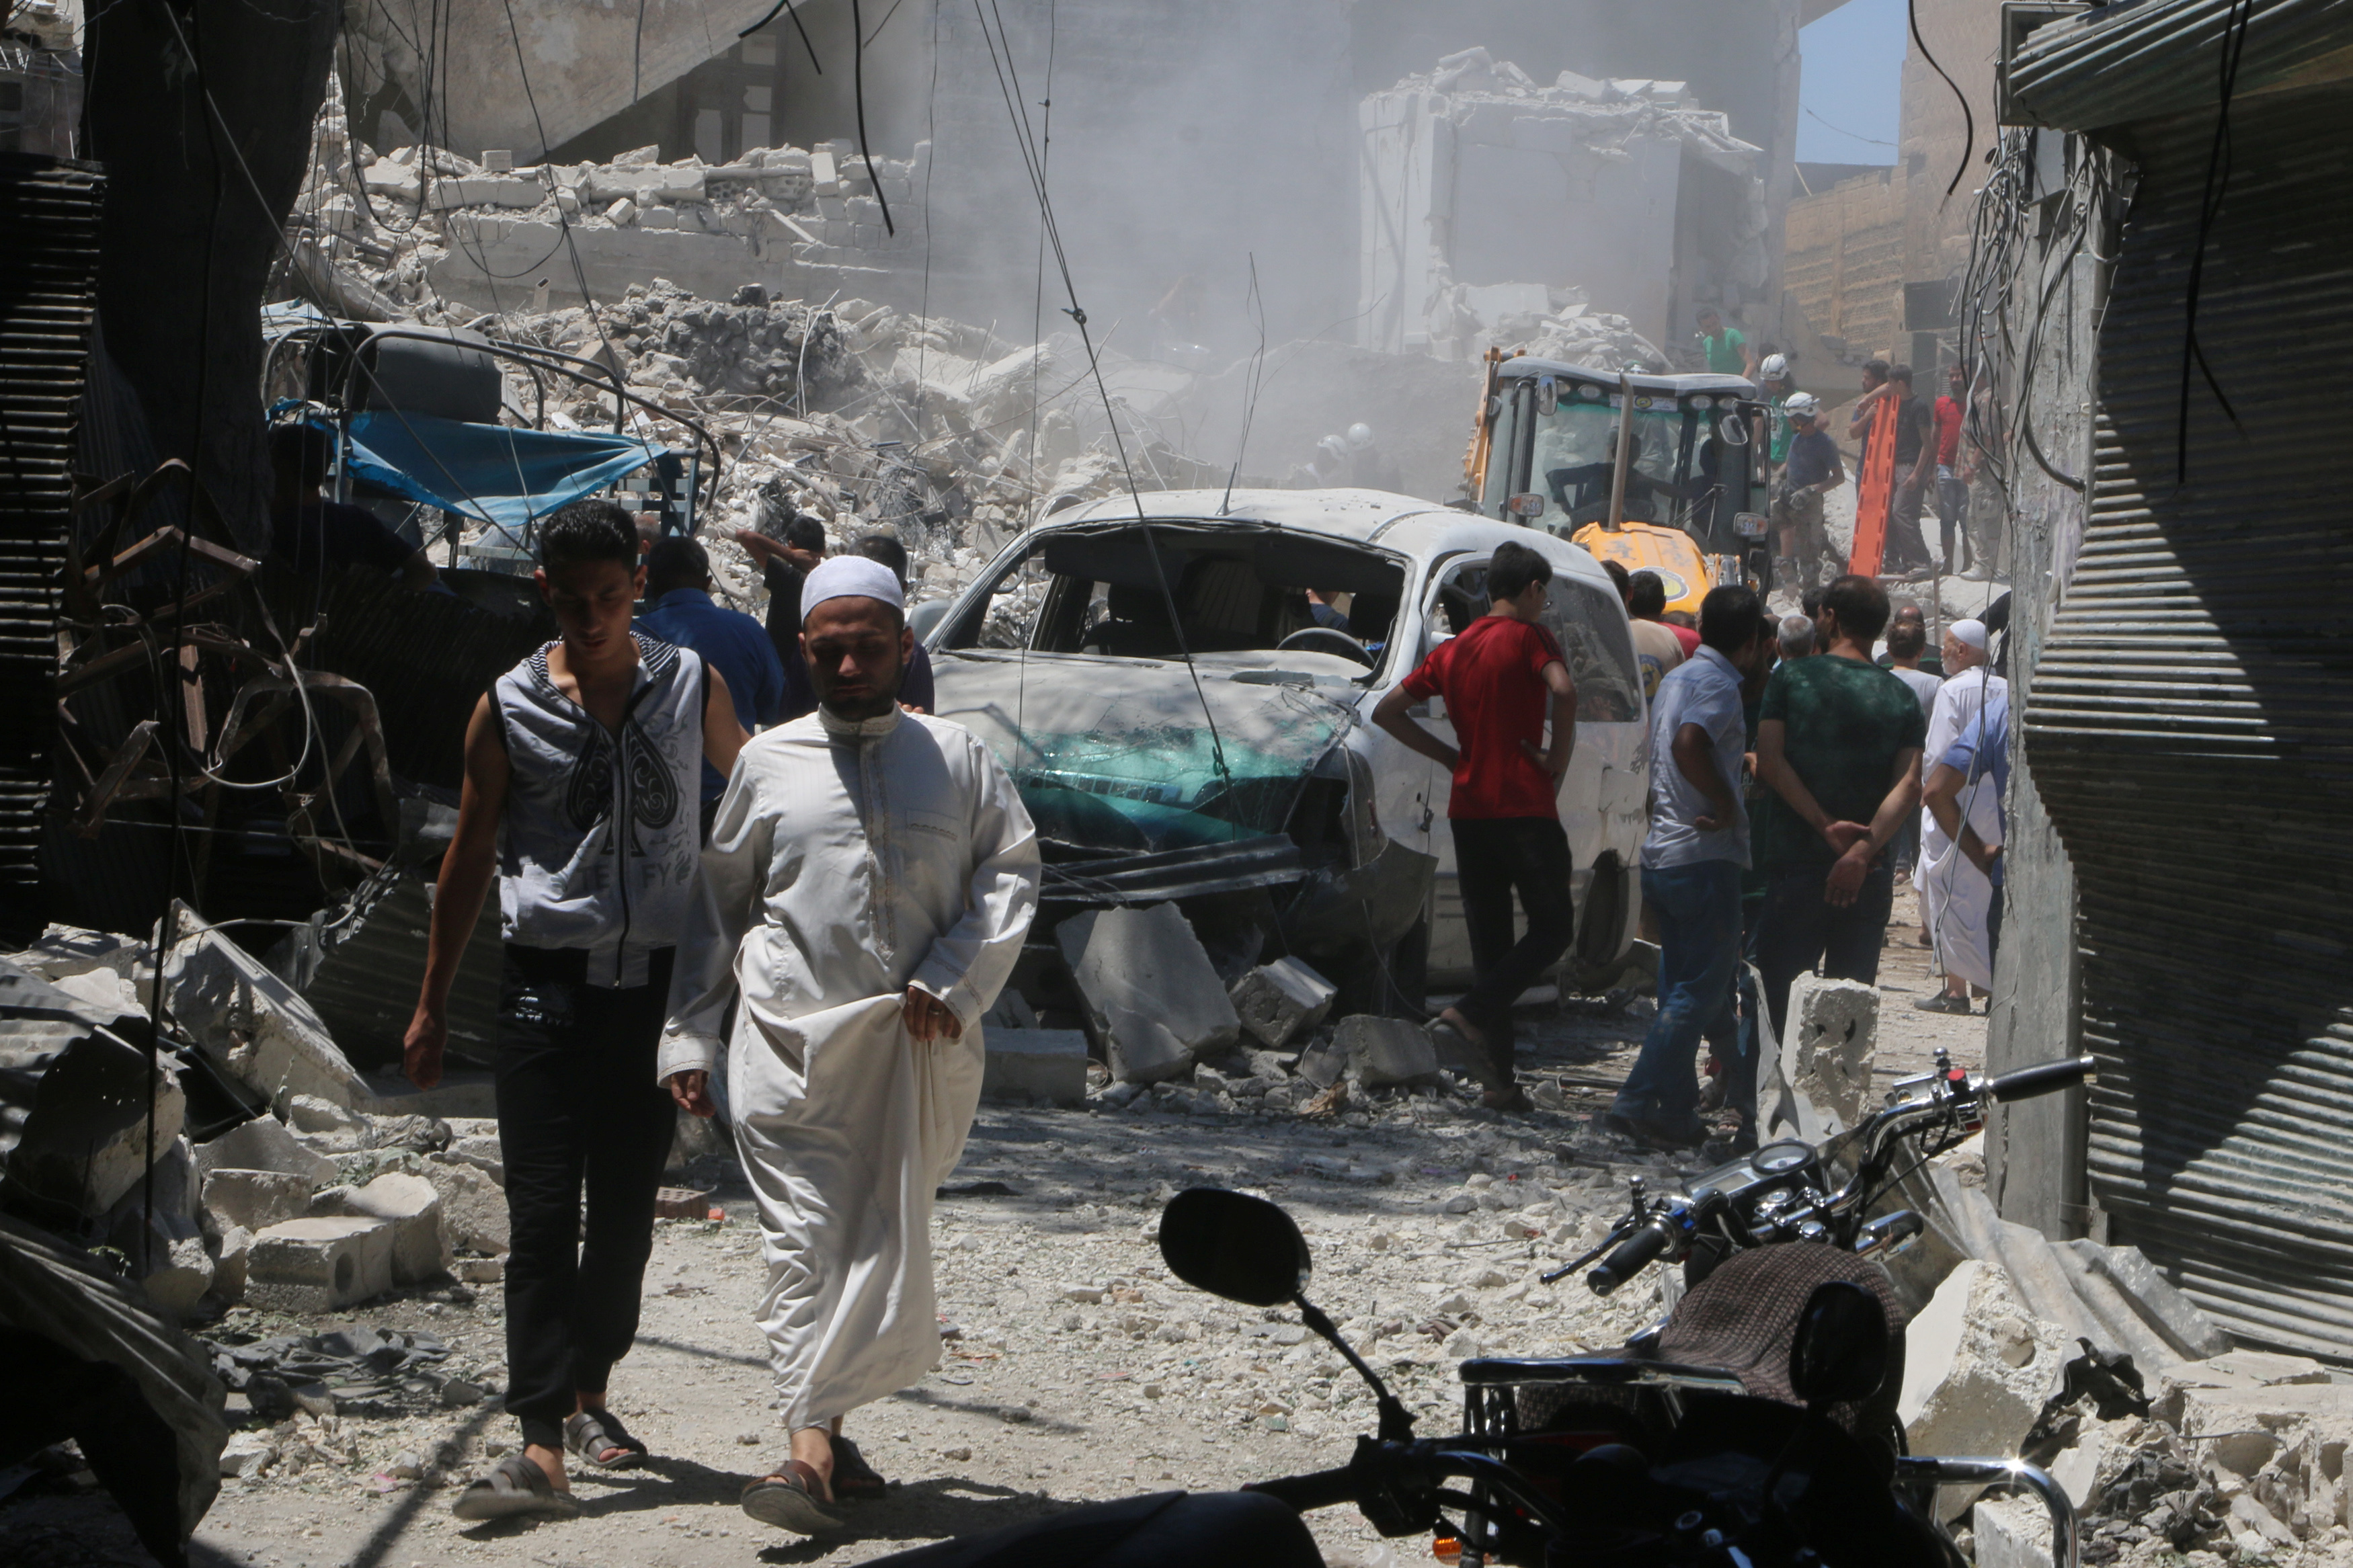 People inspect the damage at a site hit by a barrel bomb in the rebel held area of Old Aleppo, Syria on July 11, 2016